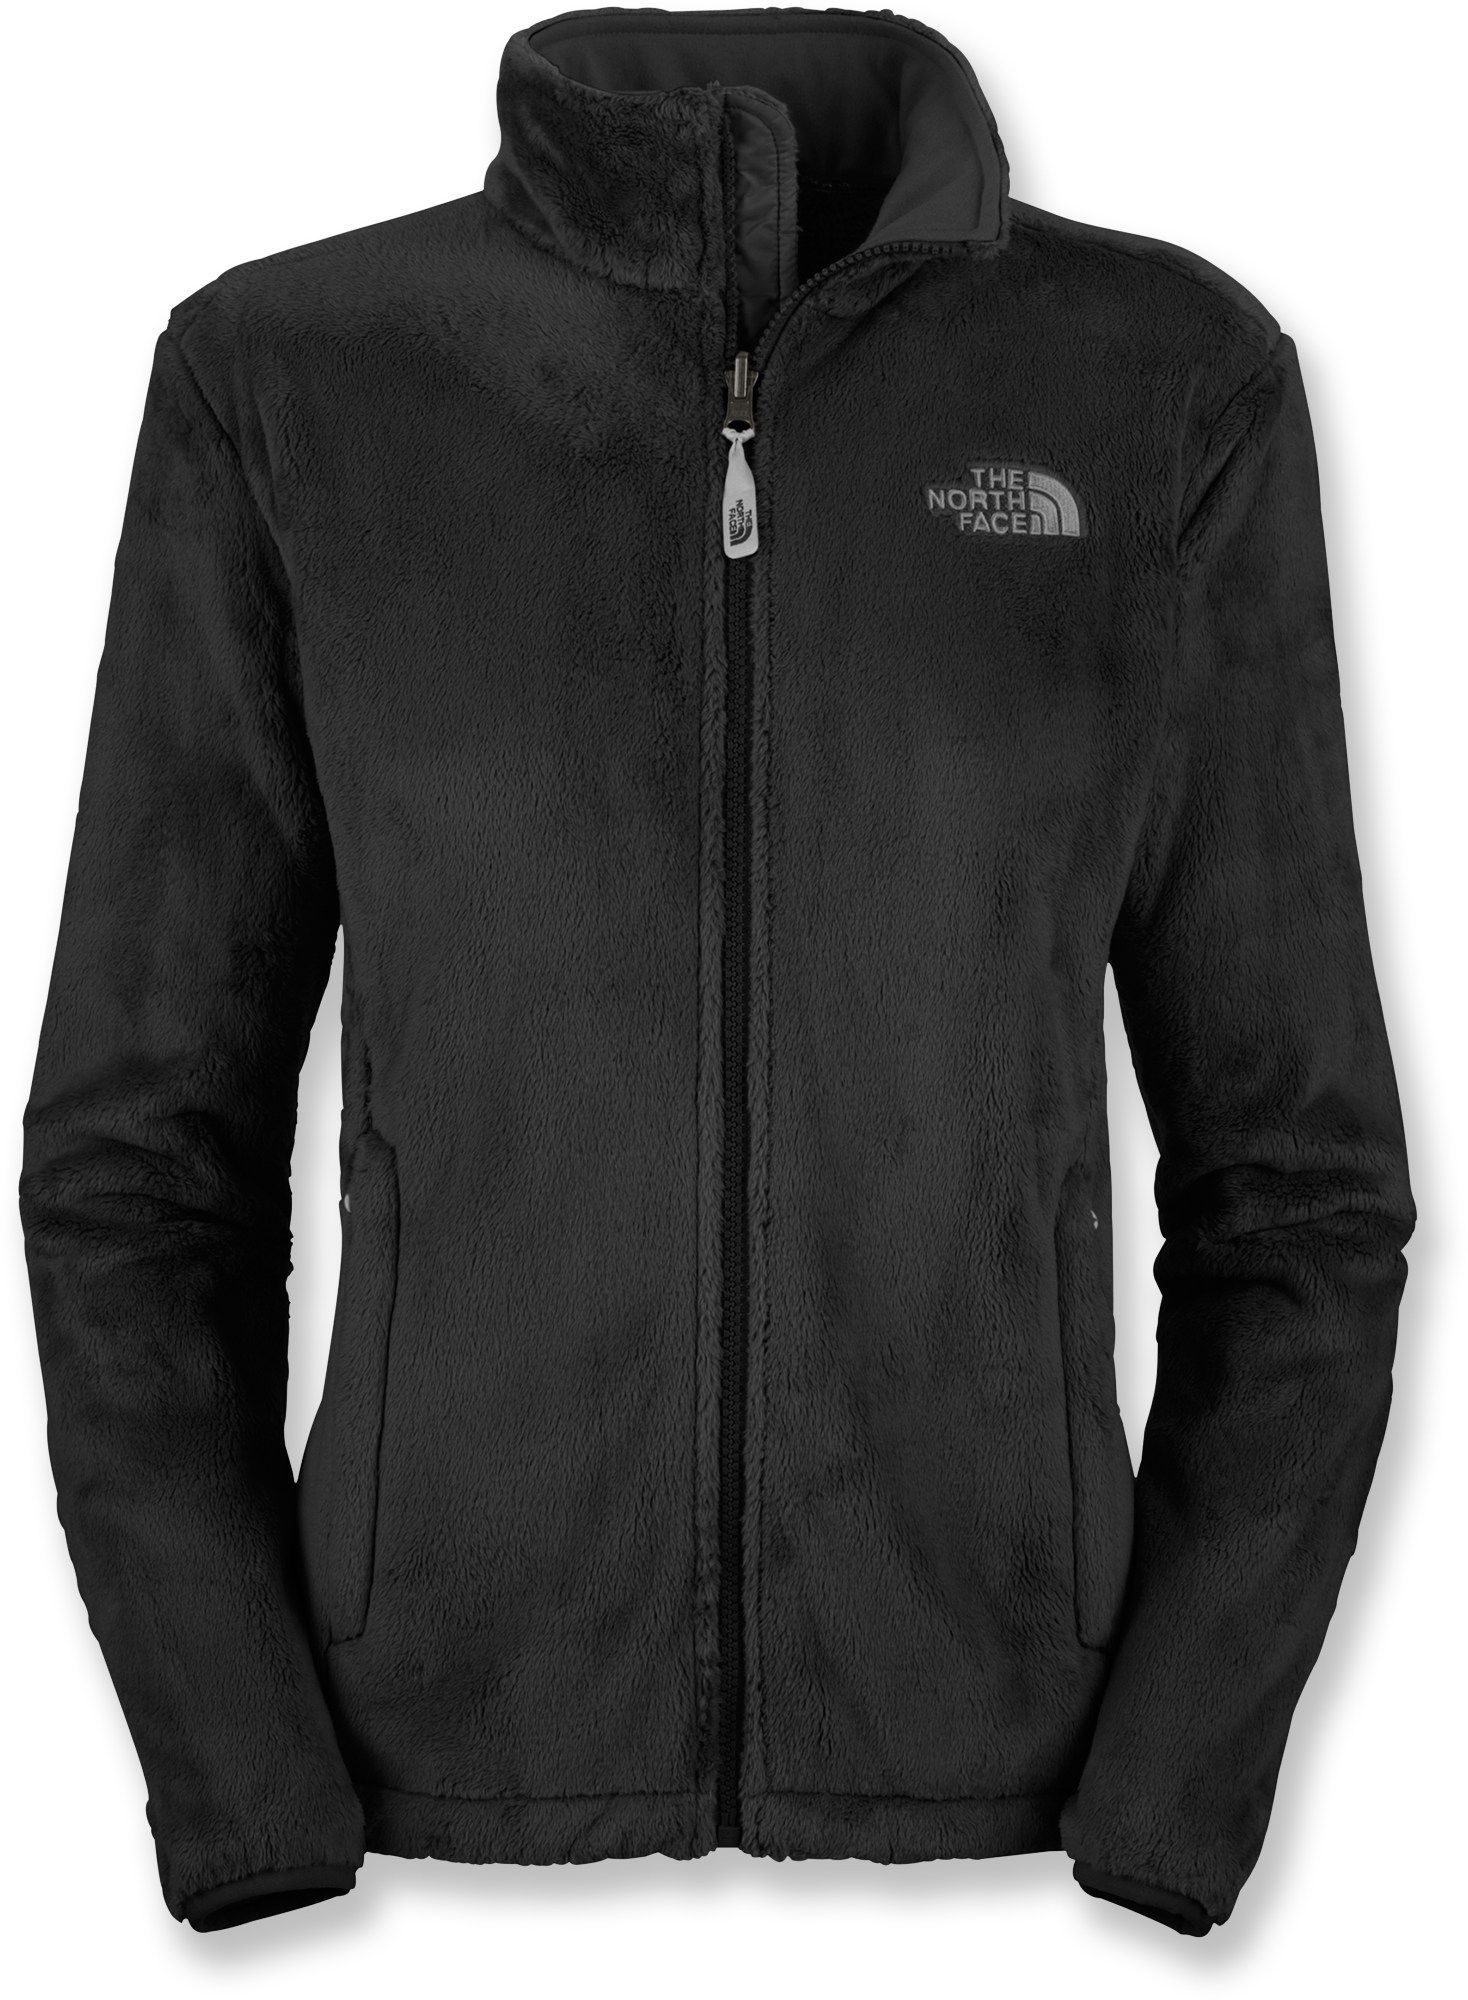 f1431a6fa896 The North Face Osito Fleece Jacket - Women s - Free Shipping at REI.com